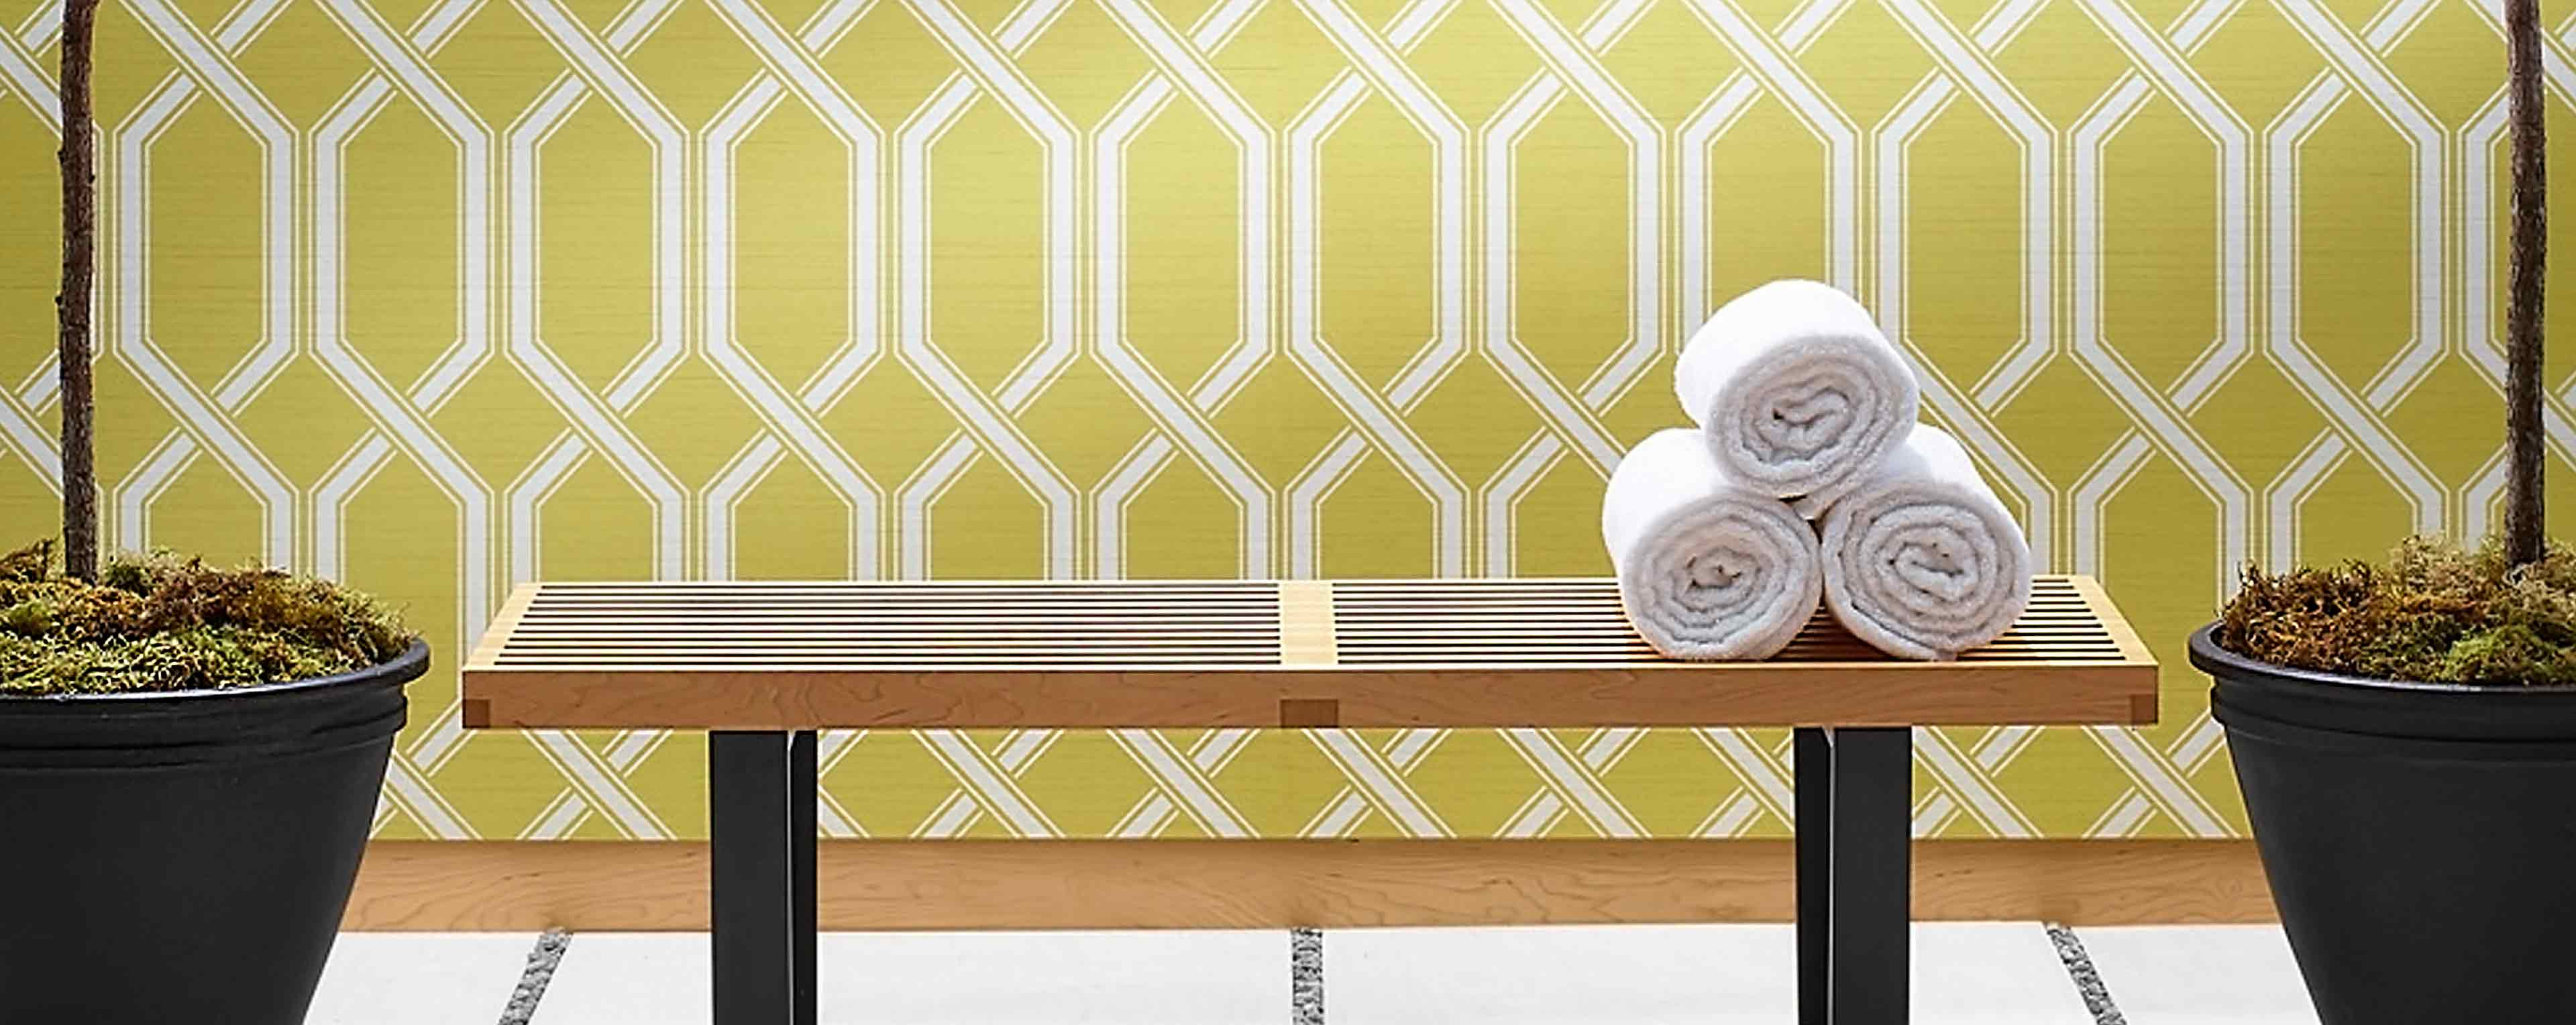 Vinyl Commercial Wallcovering, LEVEY